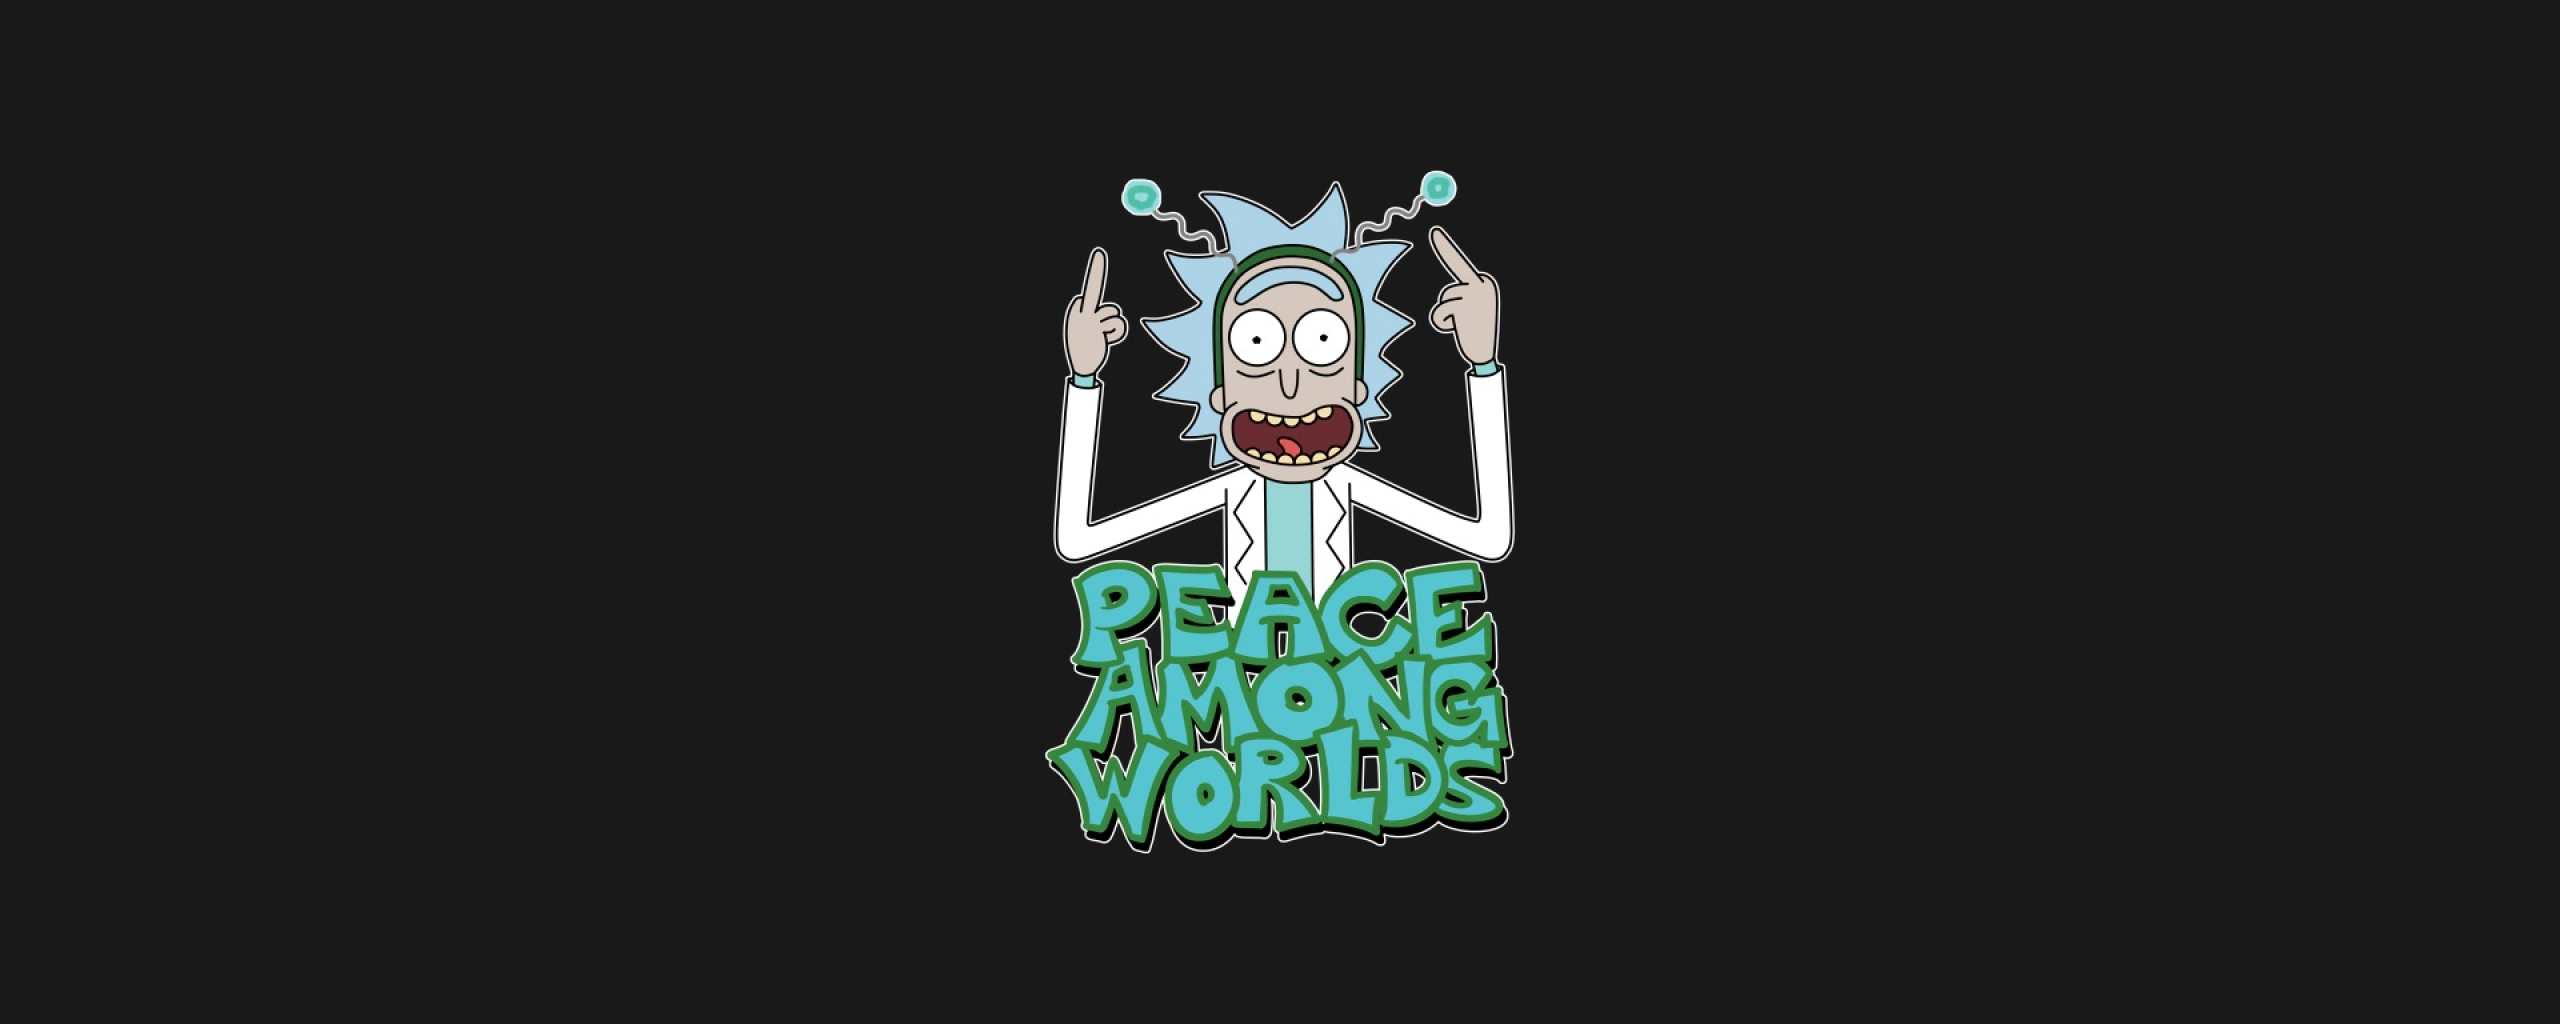 2560x1024 Peace Among Worlds Rick And Morty 2560x1024 Resolution